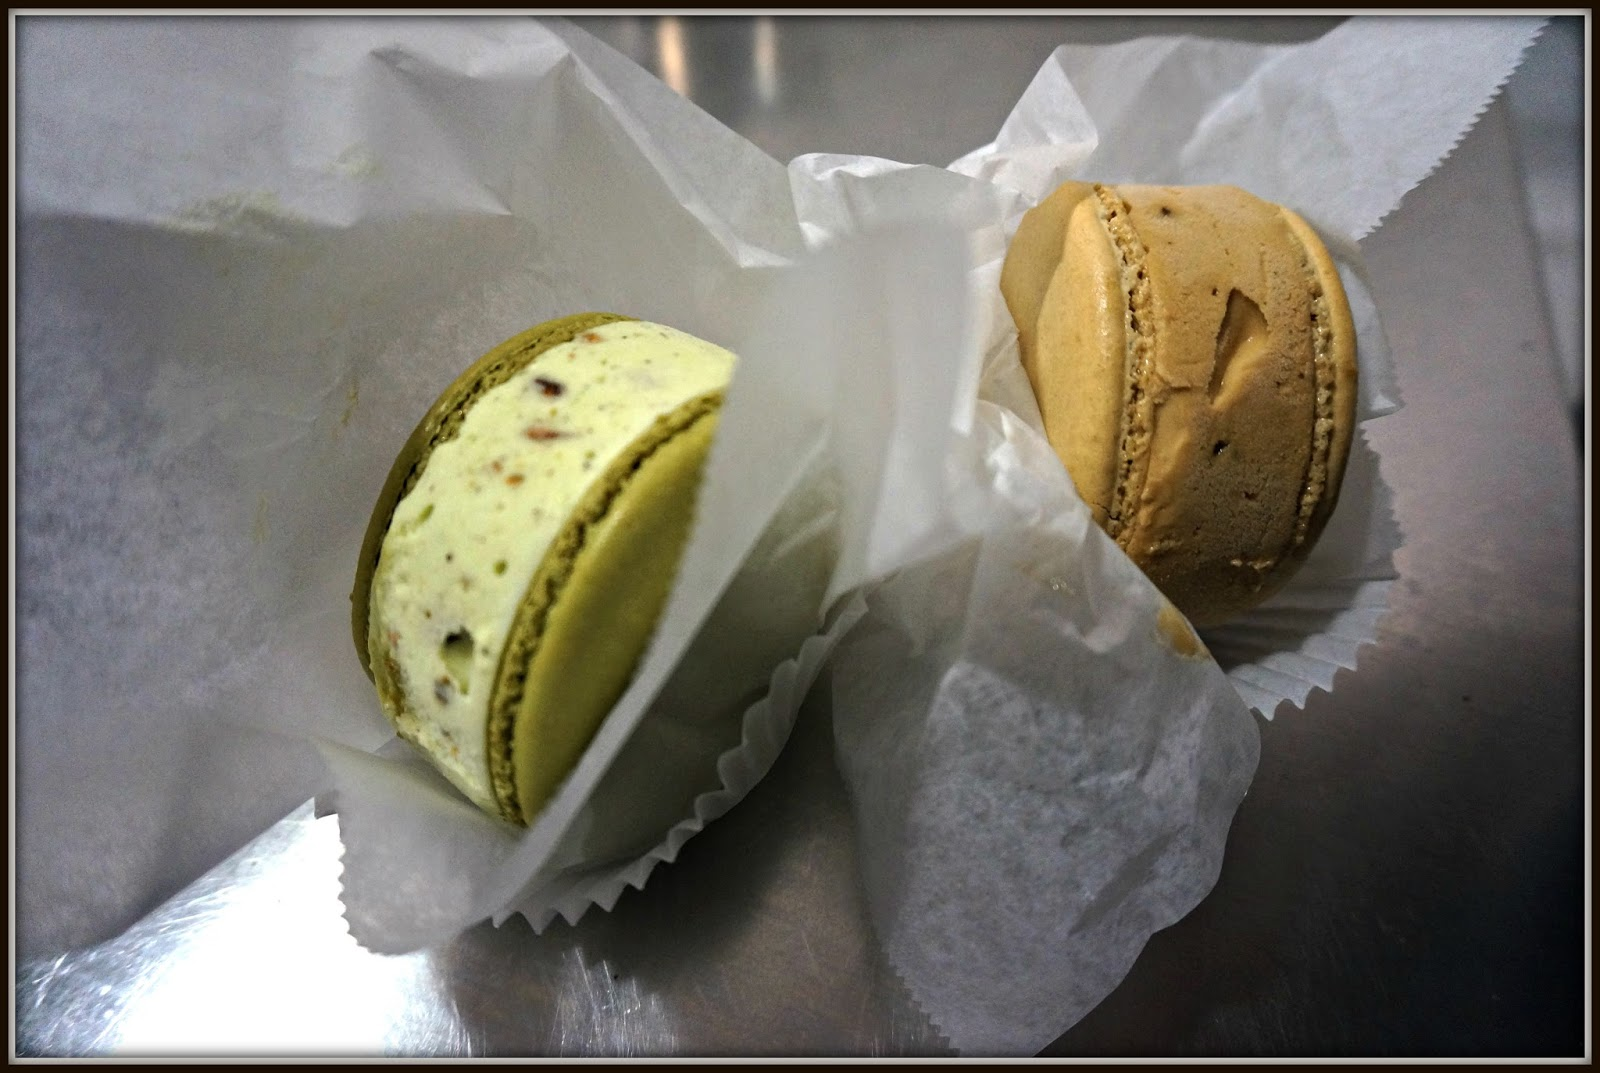 Macaron Ice Cream: Pistachio and Coffee Toffee